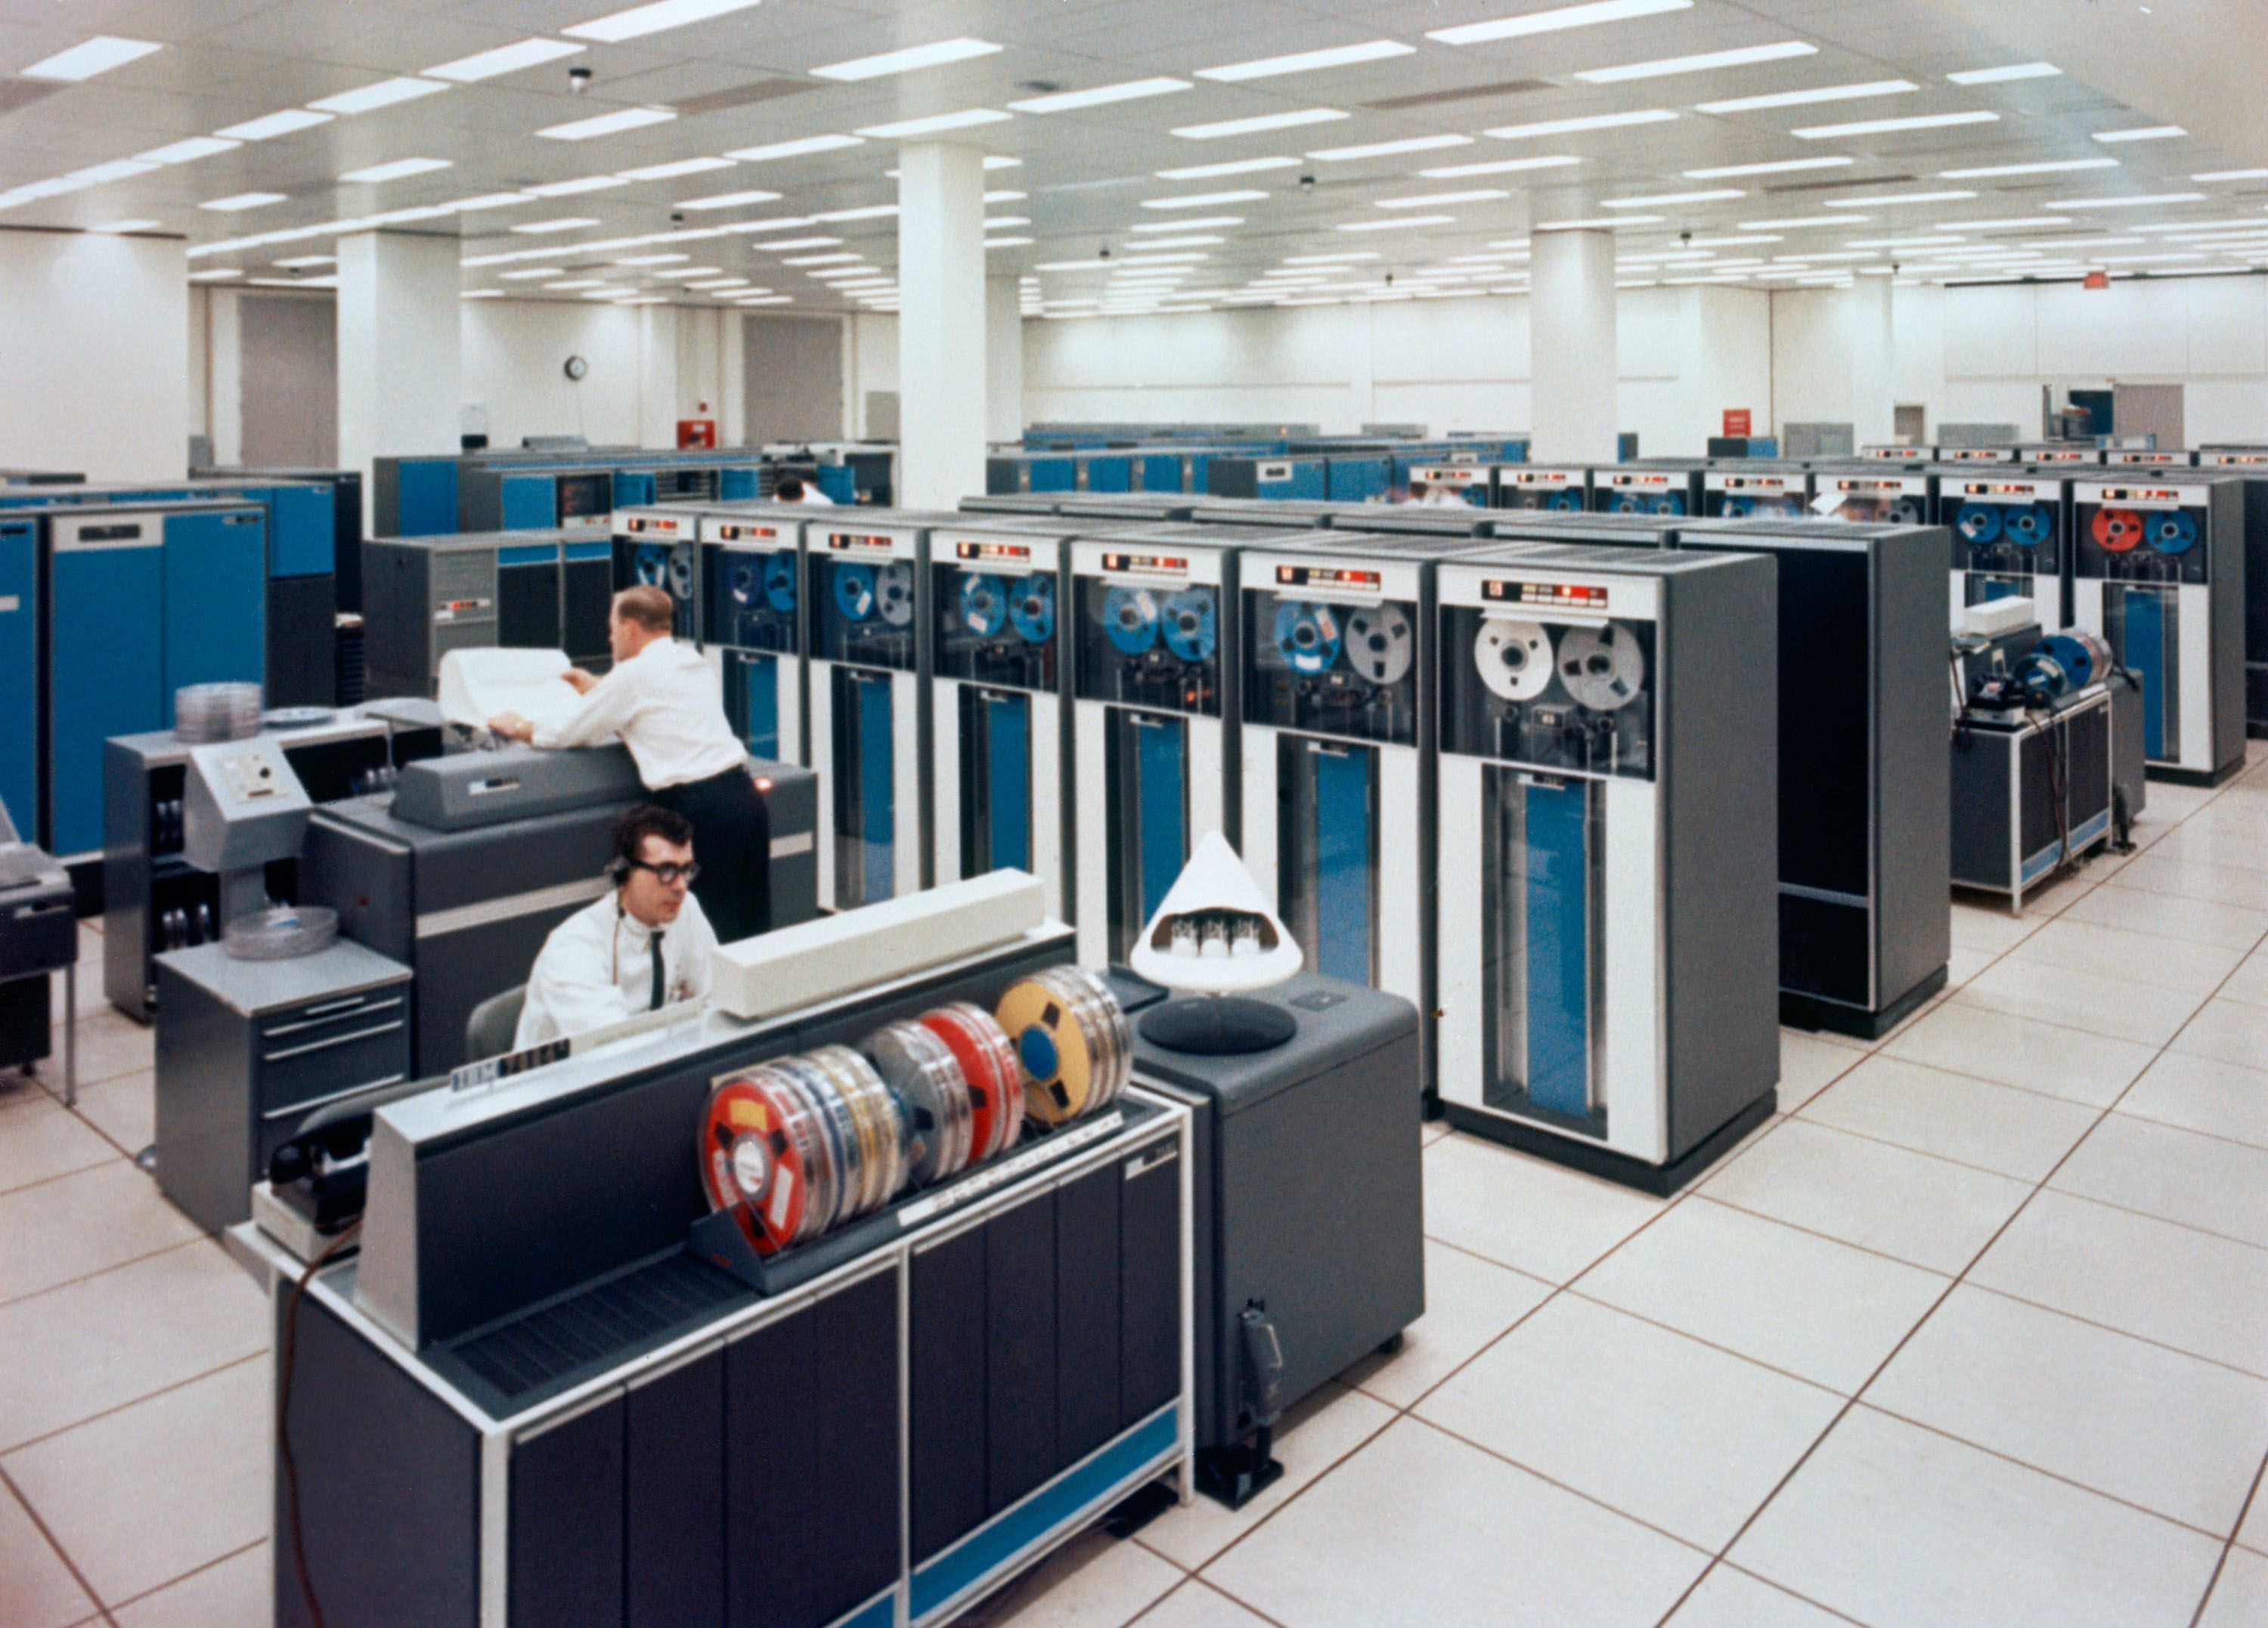 Ibm Mainframe Computers History Google Search Computer History Technology History Tech History